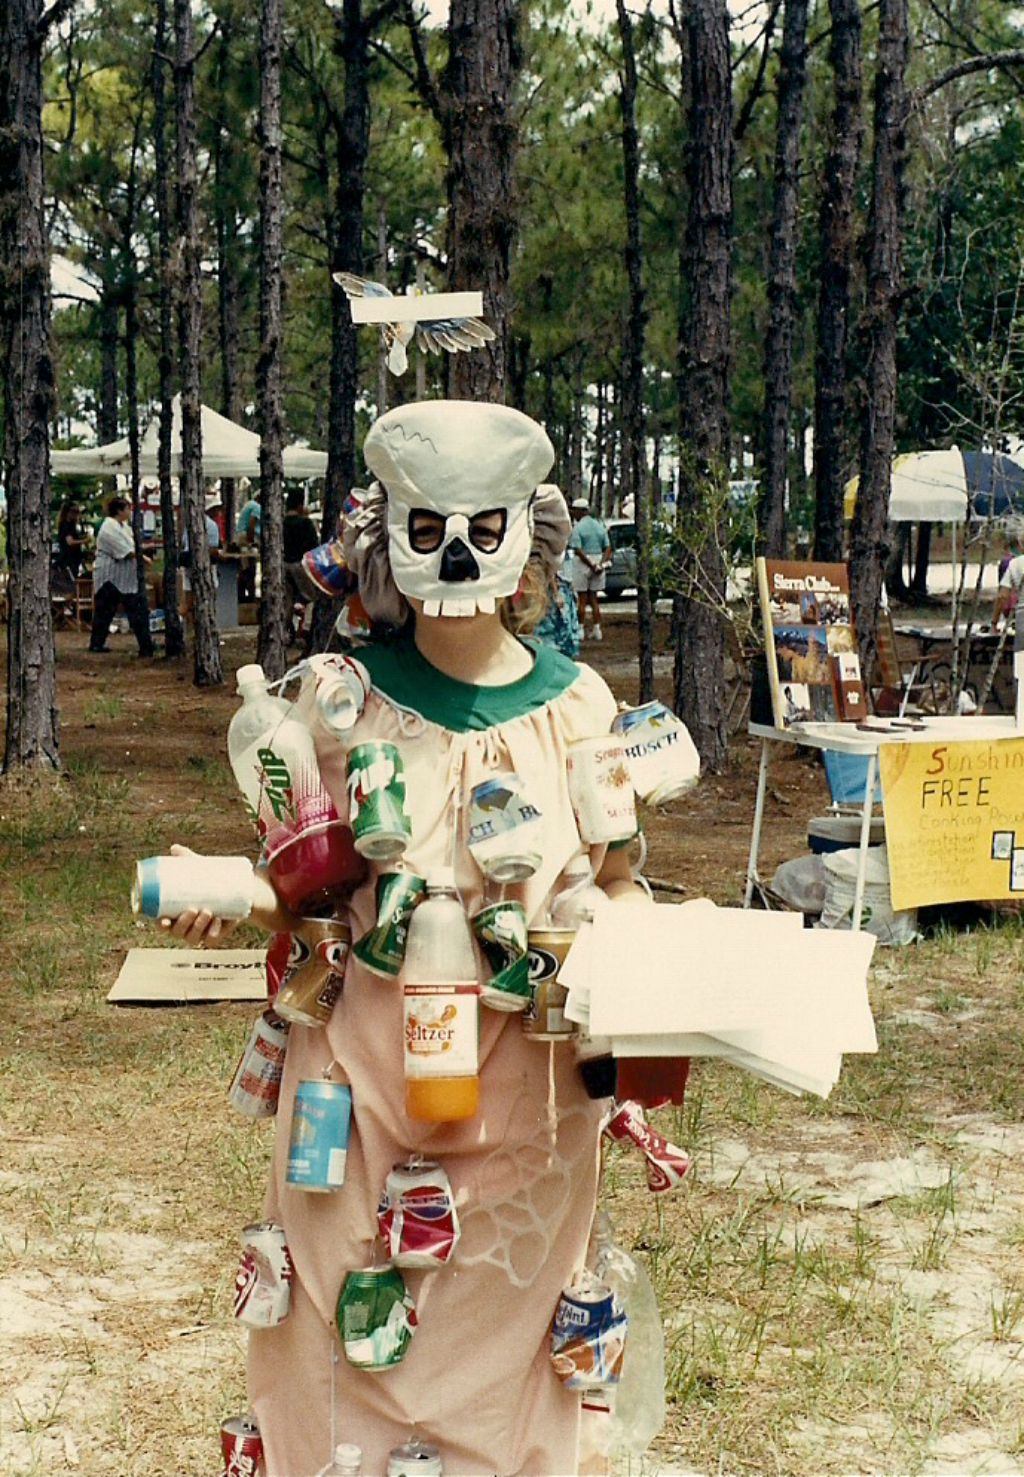 Earth Day 1990 | A woman dressed up as a garbage lady promotes recycling